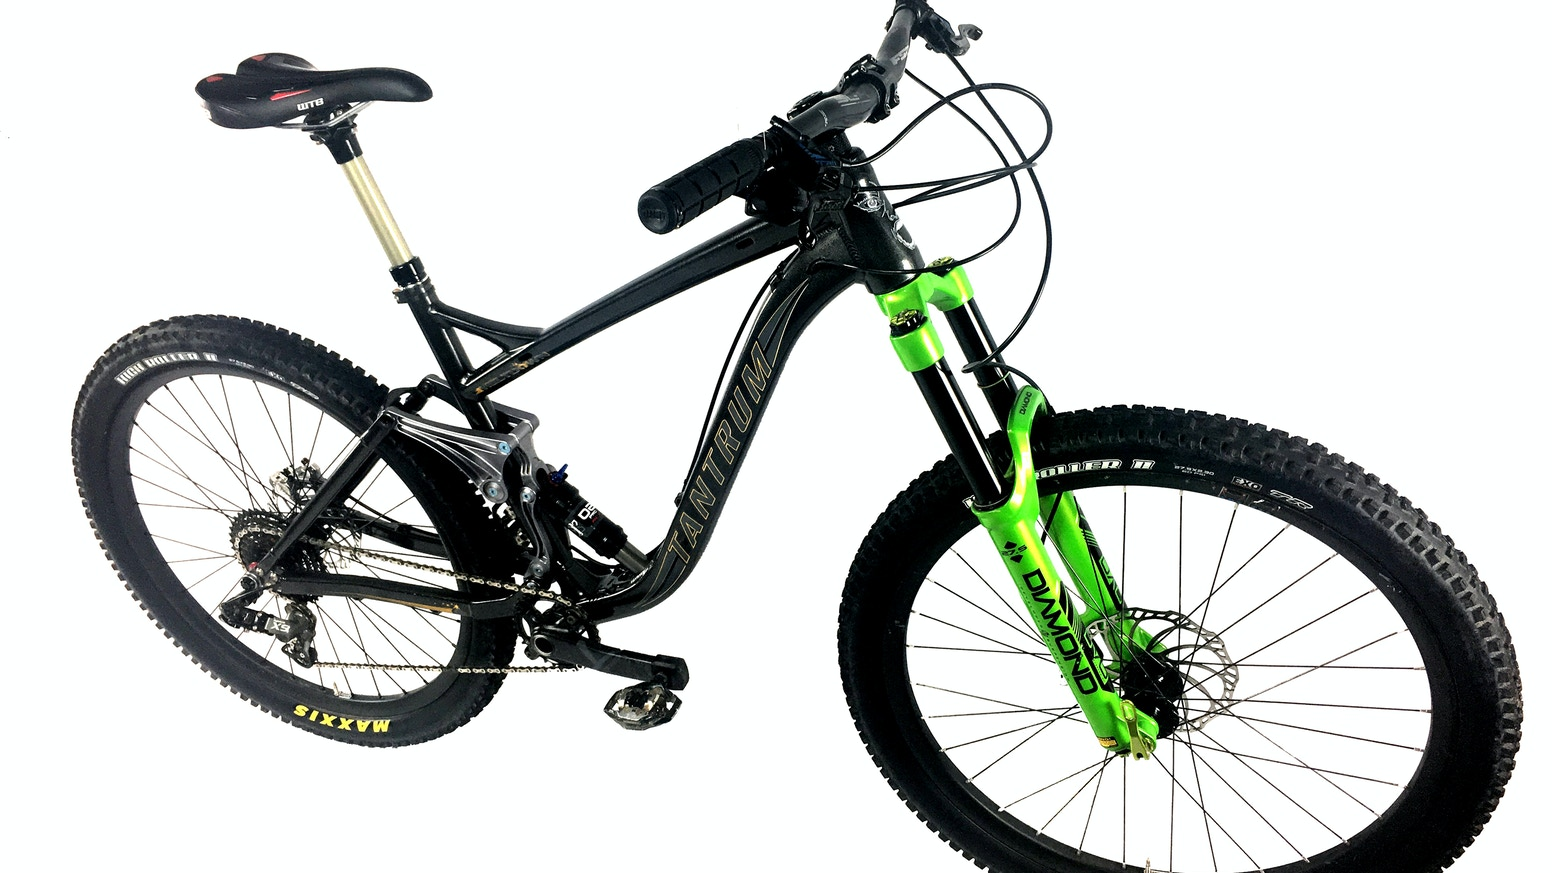 Tantrum Cycles The Missing Link In Full Suspension Bikes By Circuit Positive And Negative Half Halfcycle Does Impossible Pedals Like A Hardtail Delivers Plush